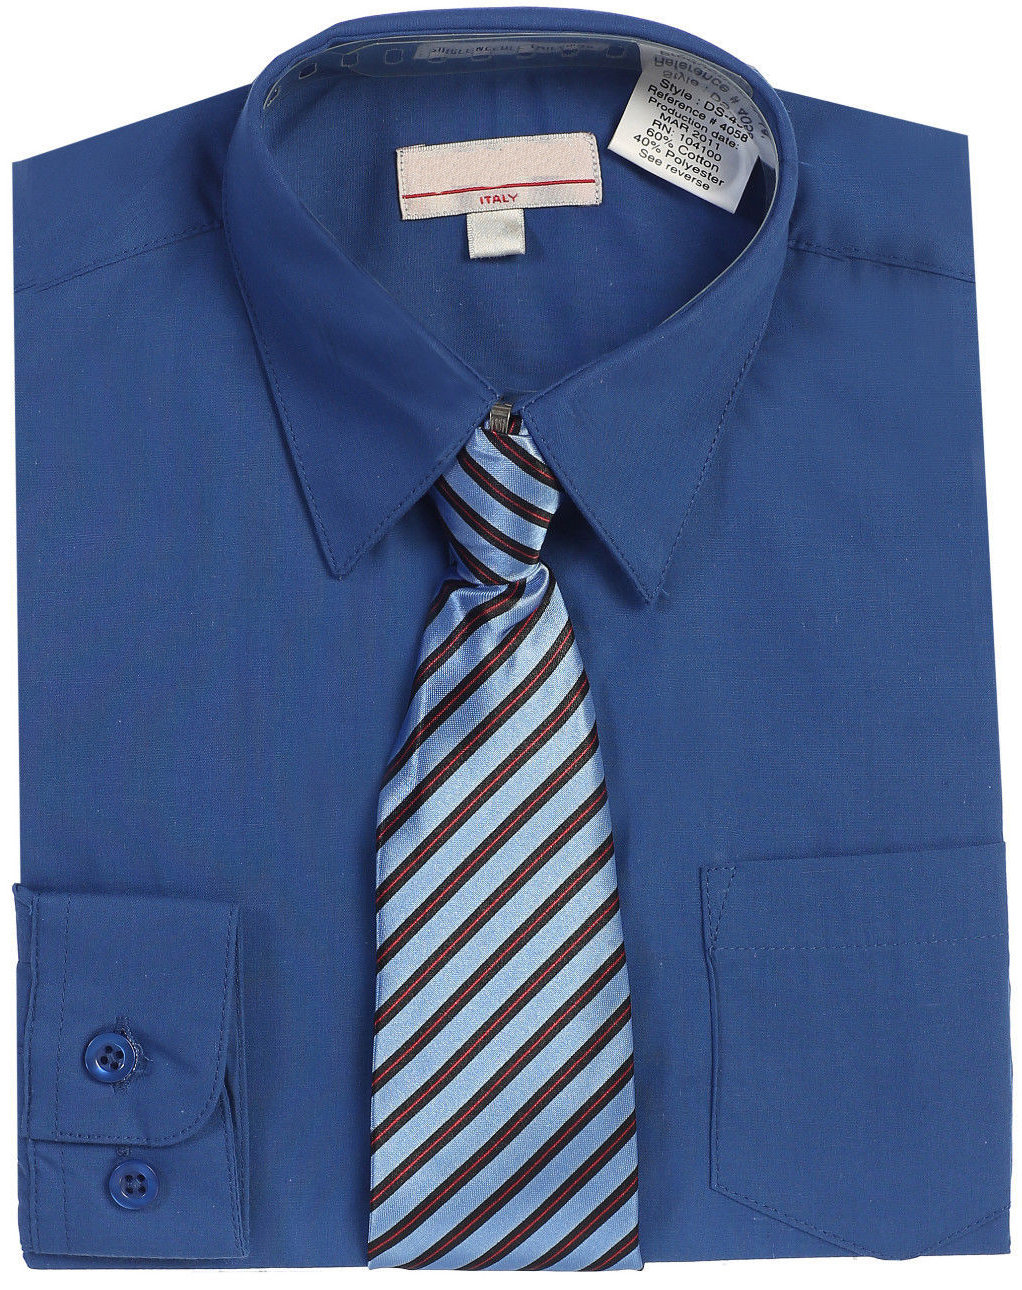 The Gallery For Dark Blue Shirt With Tie